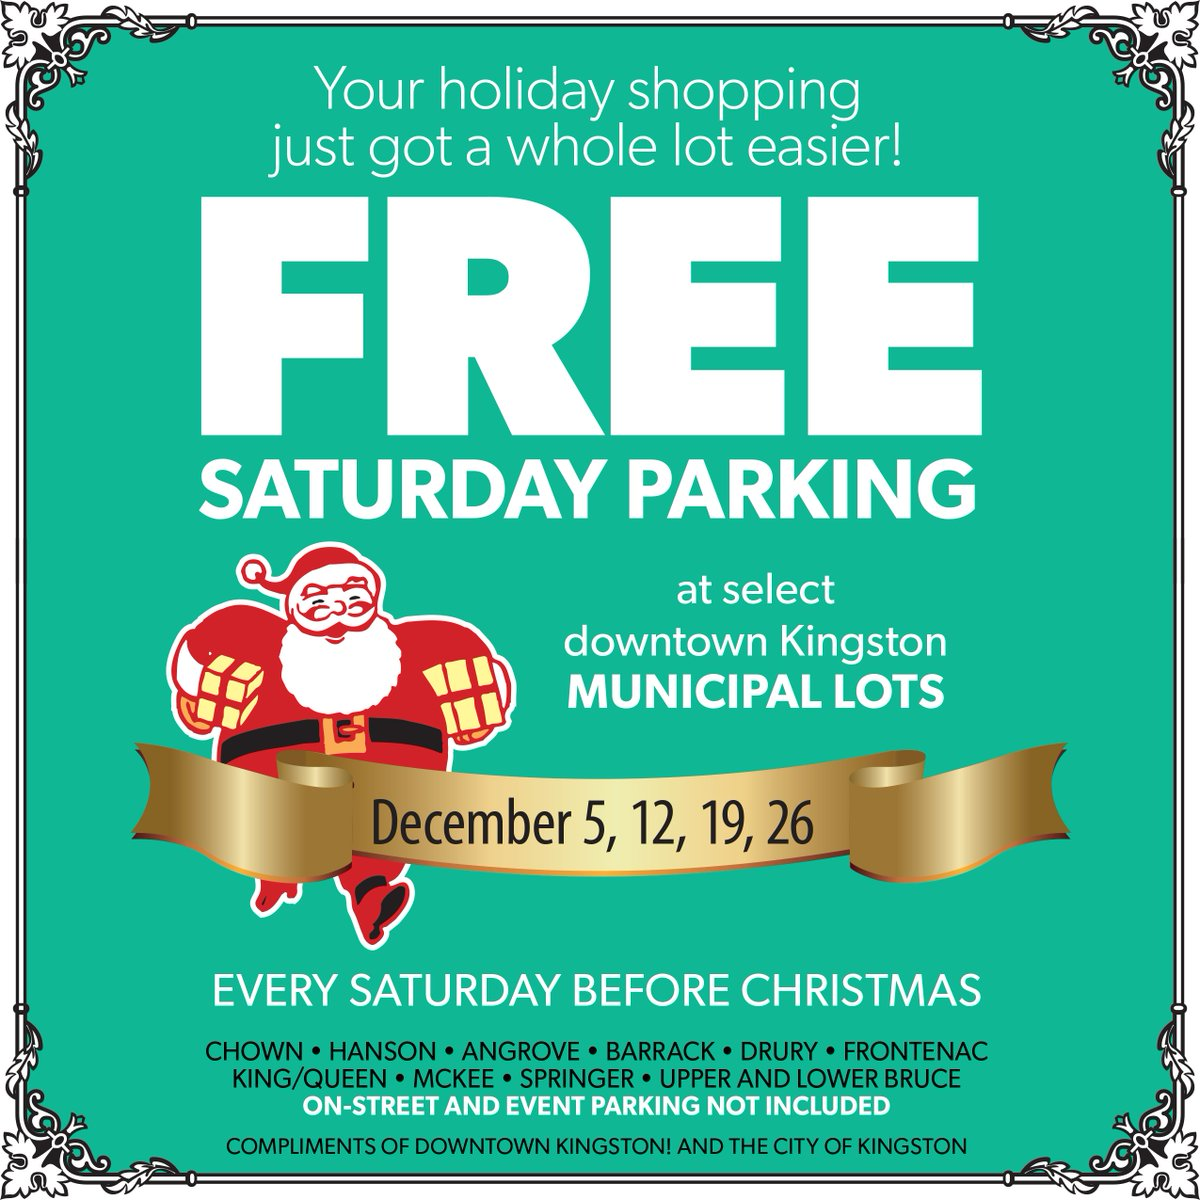 FREE Parking tomorrow and every Saturday in December in Downtown Municipal Lots! #ygk https://t.co/Y0QRX9itLs https://t.co/urKZ7Mx3KL